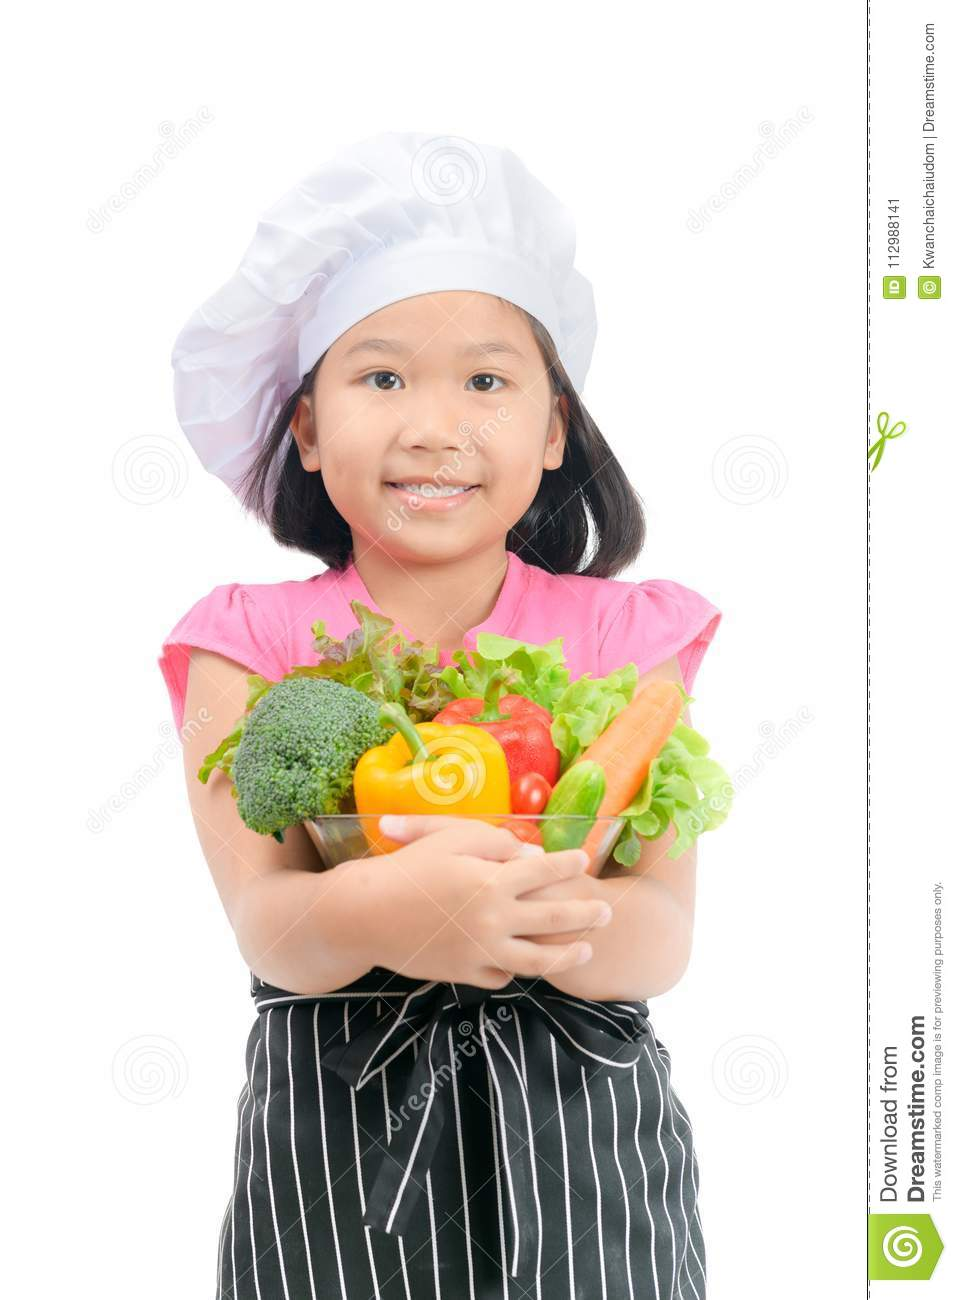 Cute little girl chef with vegetables